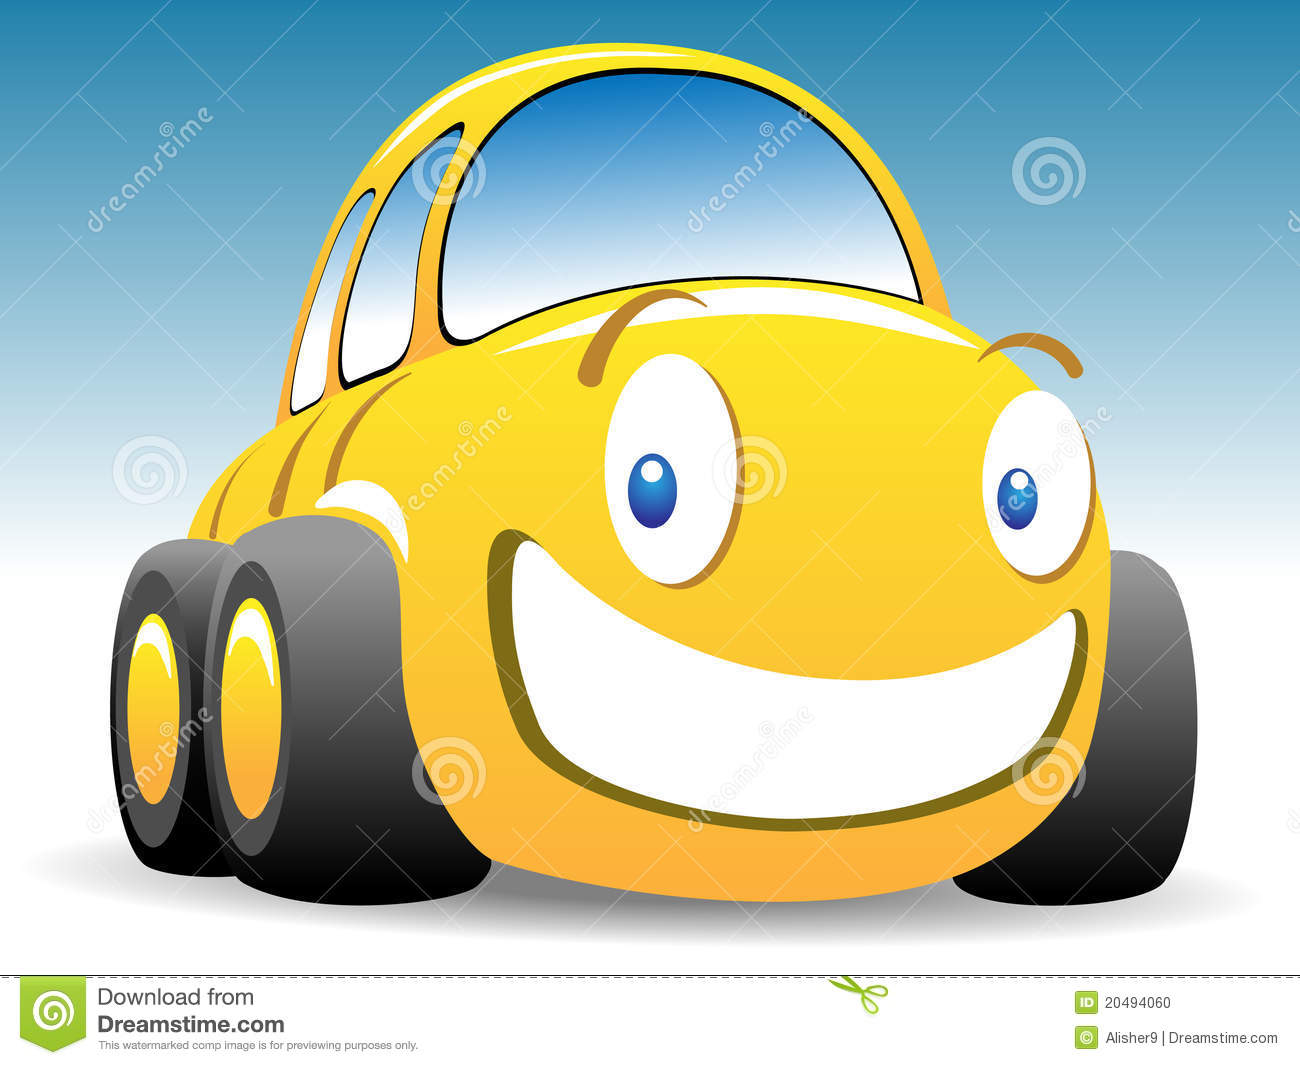 Funny race car stock vector. Illustration of speed, rally ... (1300 x 1065 Pixel)